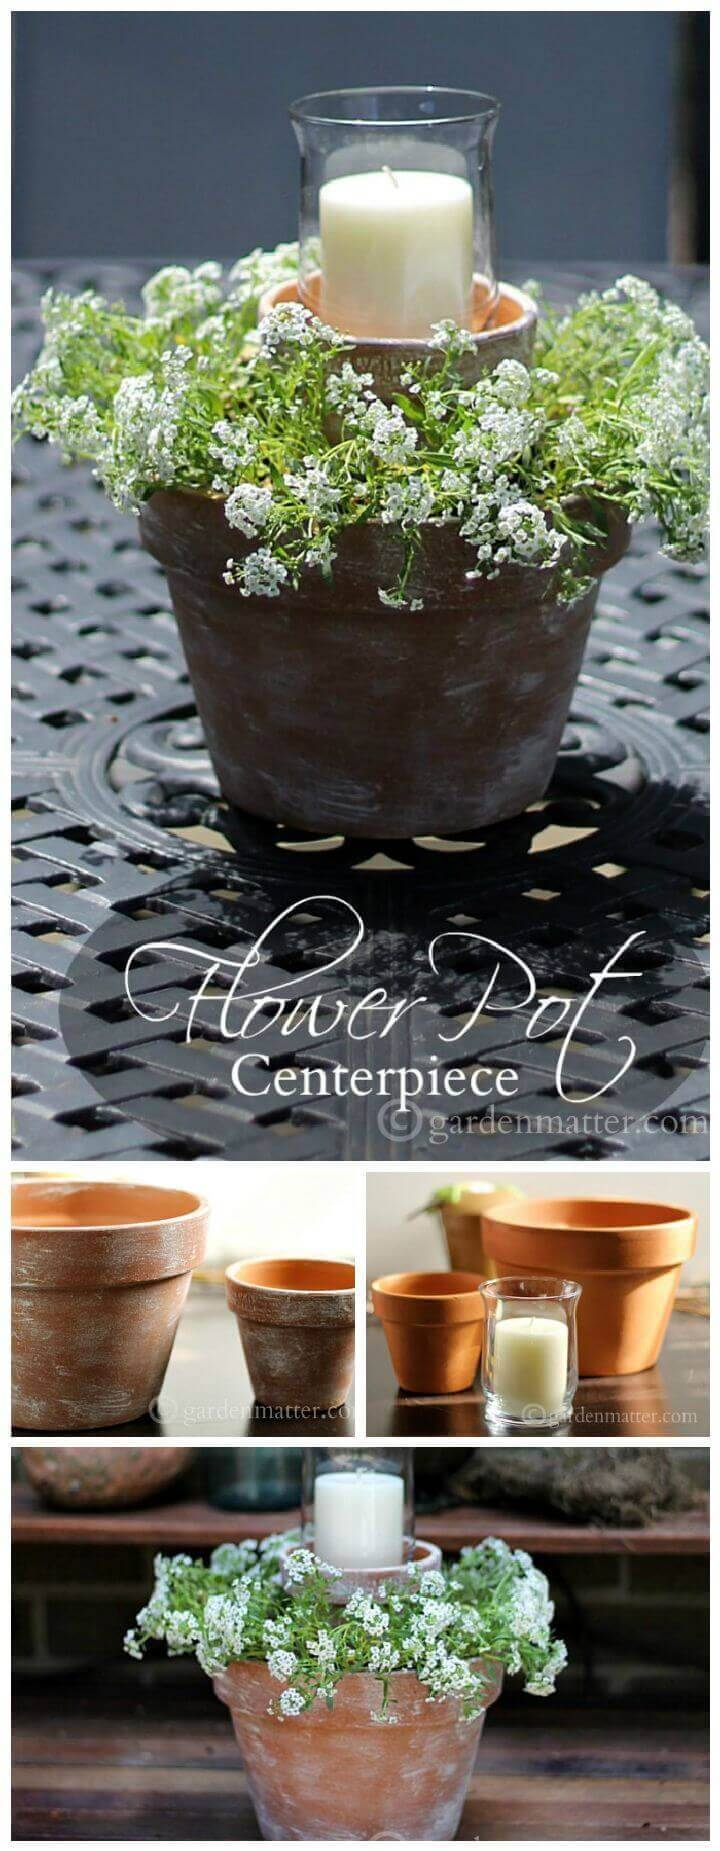 Candle And Flower Pot Centerpiece For Your Porch